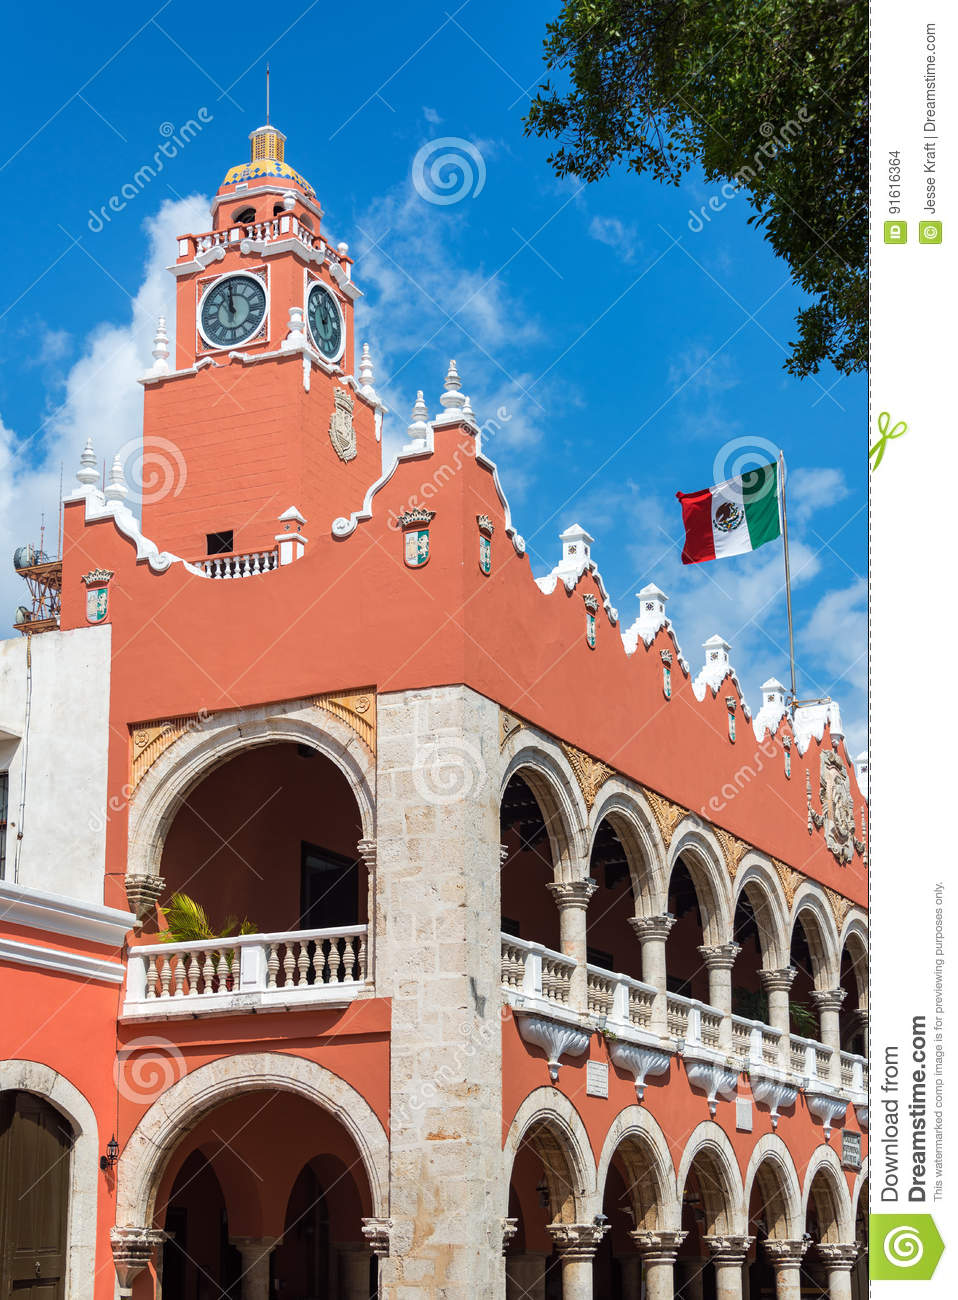 Download Merida City Hall stock photo. Image of tower, america - 91616364